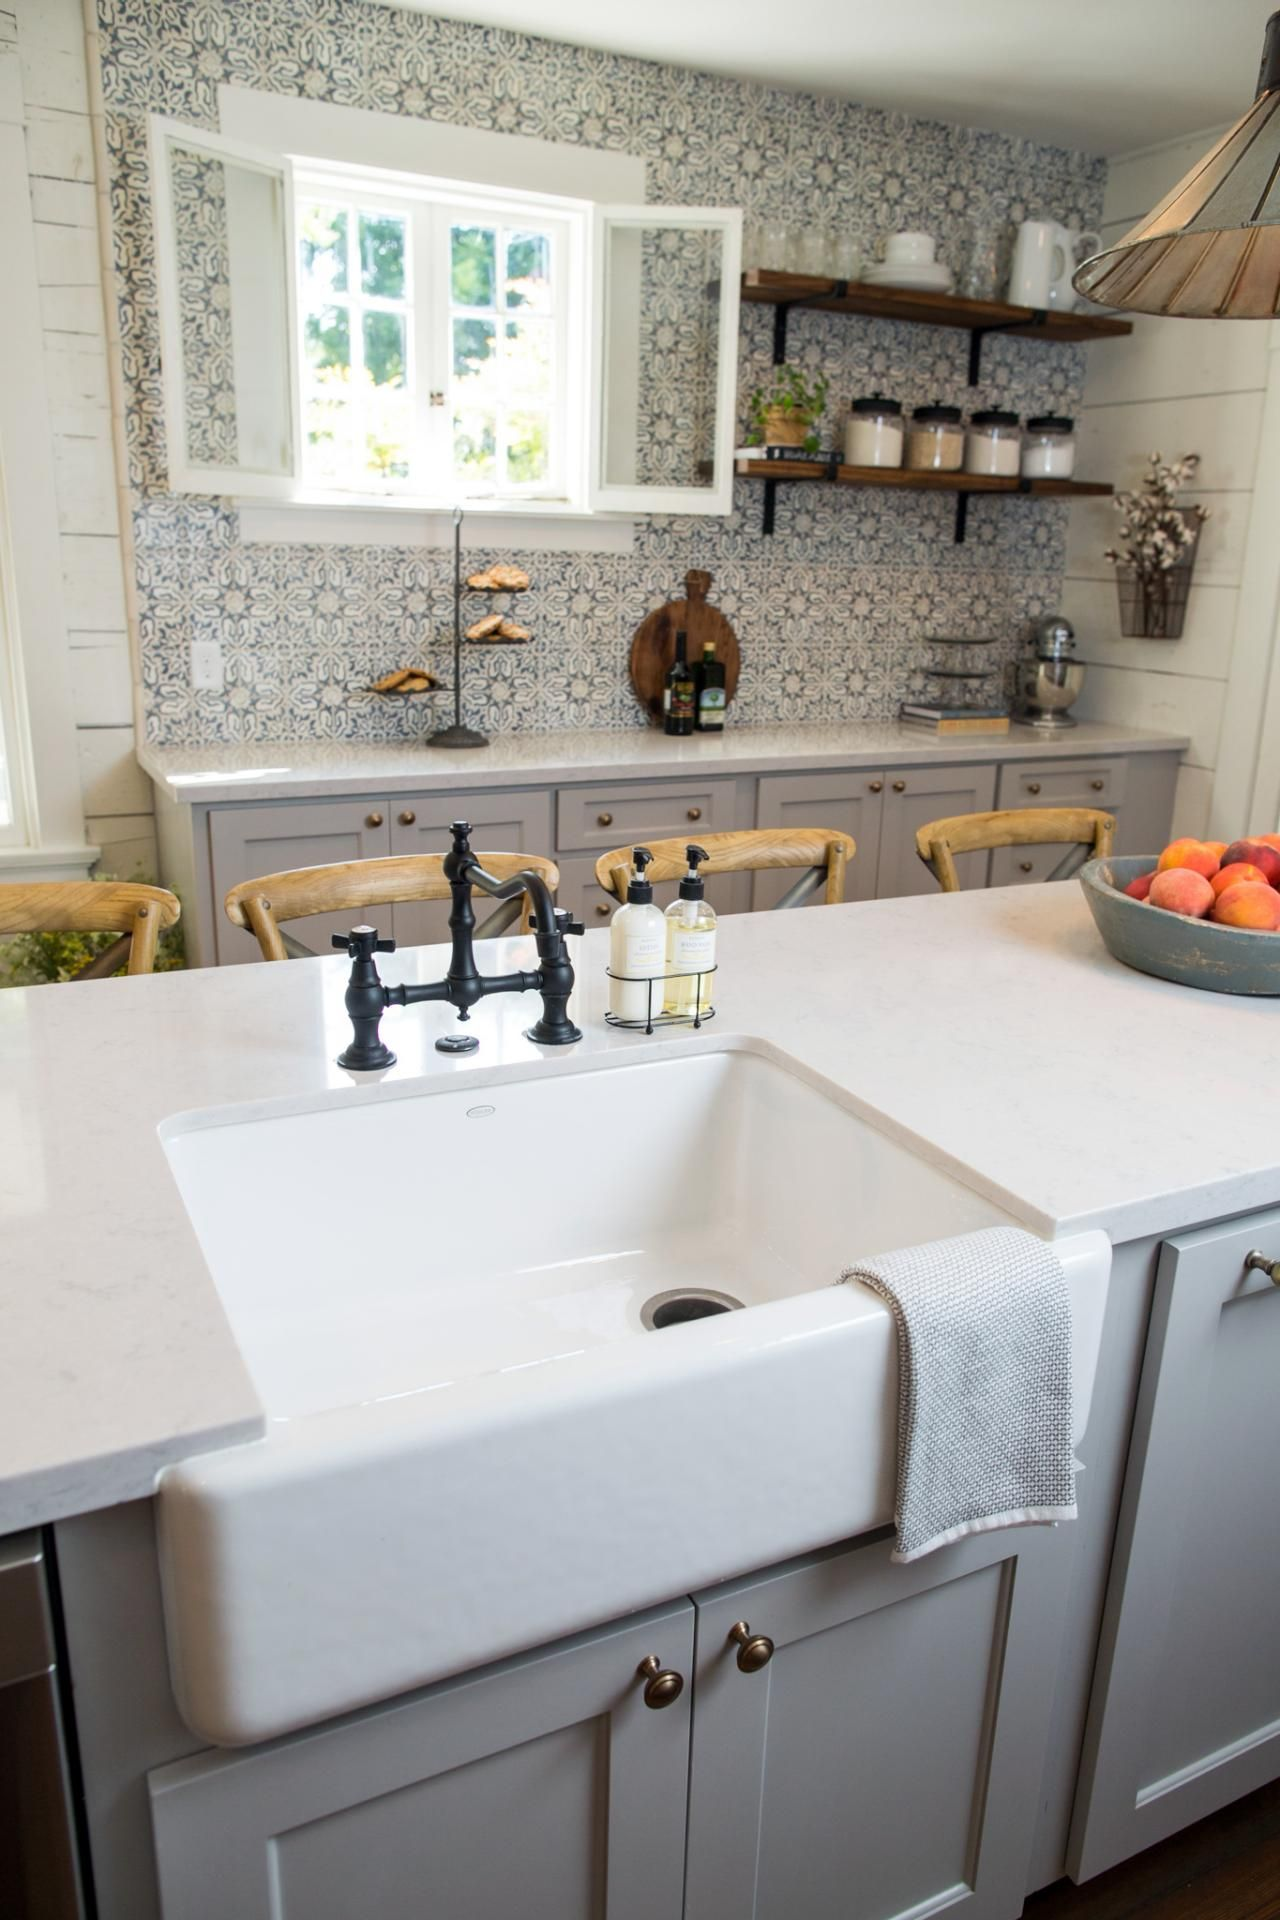 Fixer upper farm kitchens - 17 Best Images About Kitchen On Pinterest Magnolia House Islands And Tile